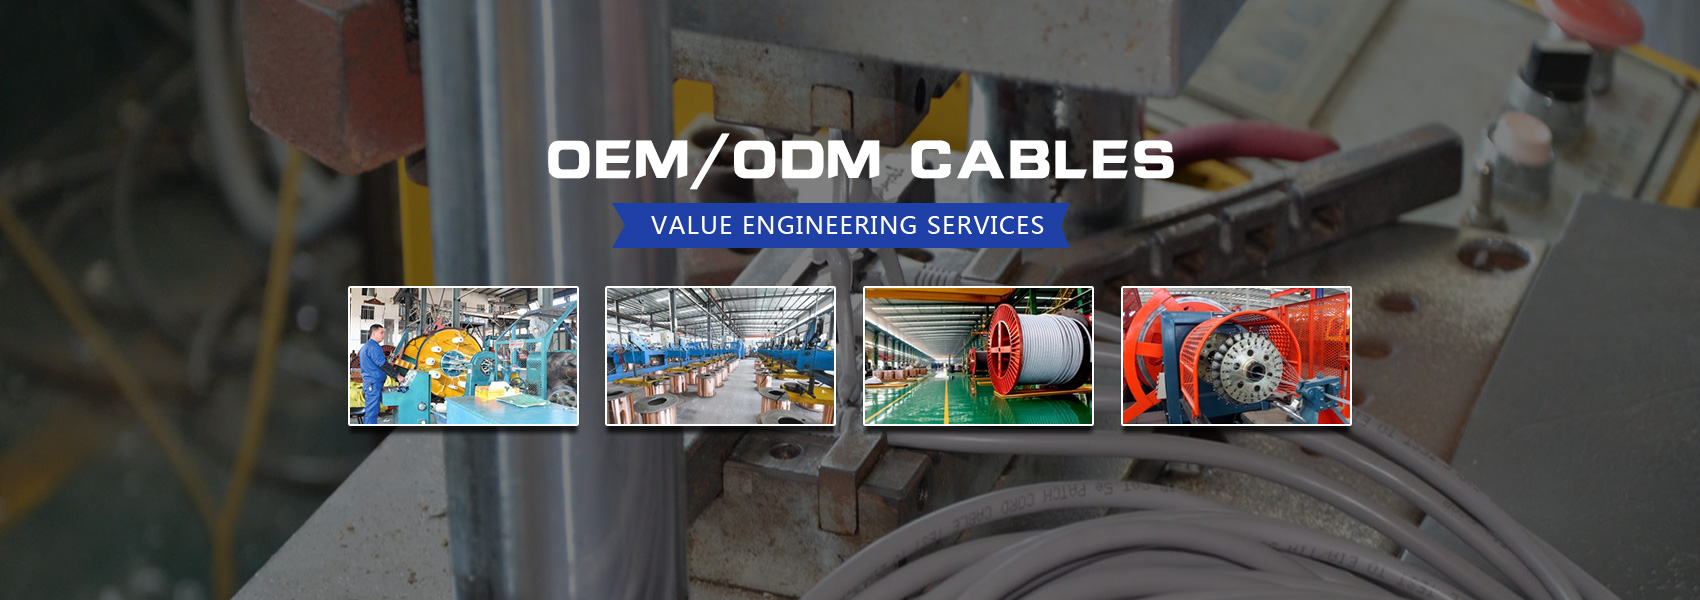 Sinnhong Electronics Manufacturing Colimited Cable Assembly And Wire Harness Manufacturer Since1998